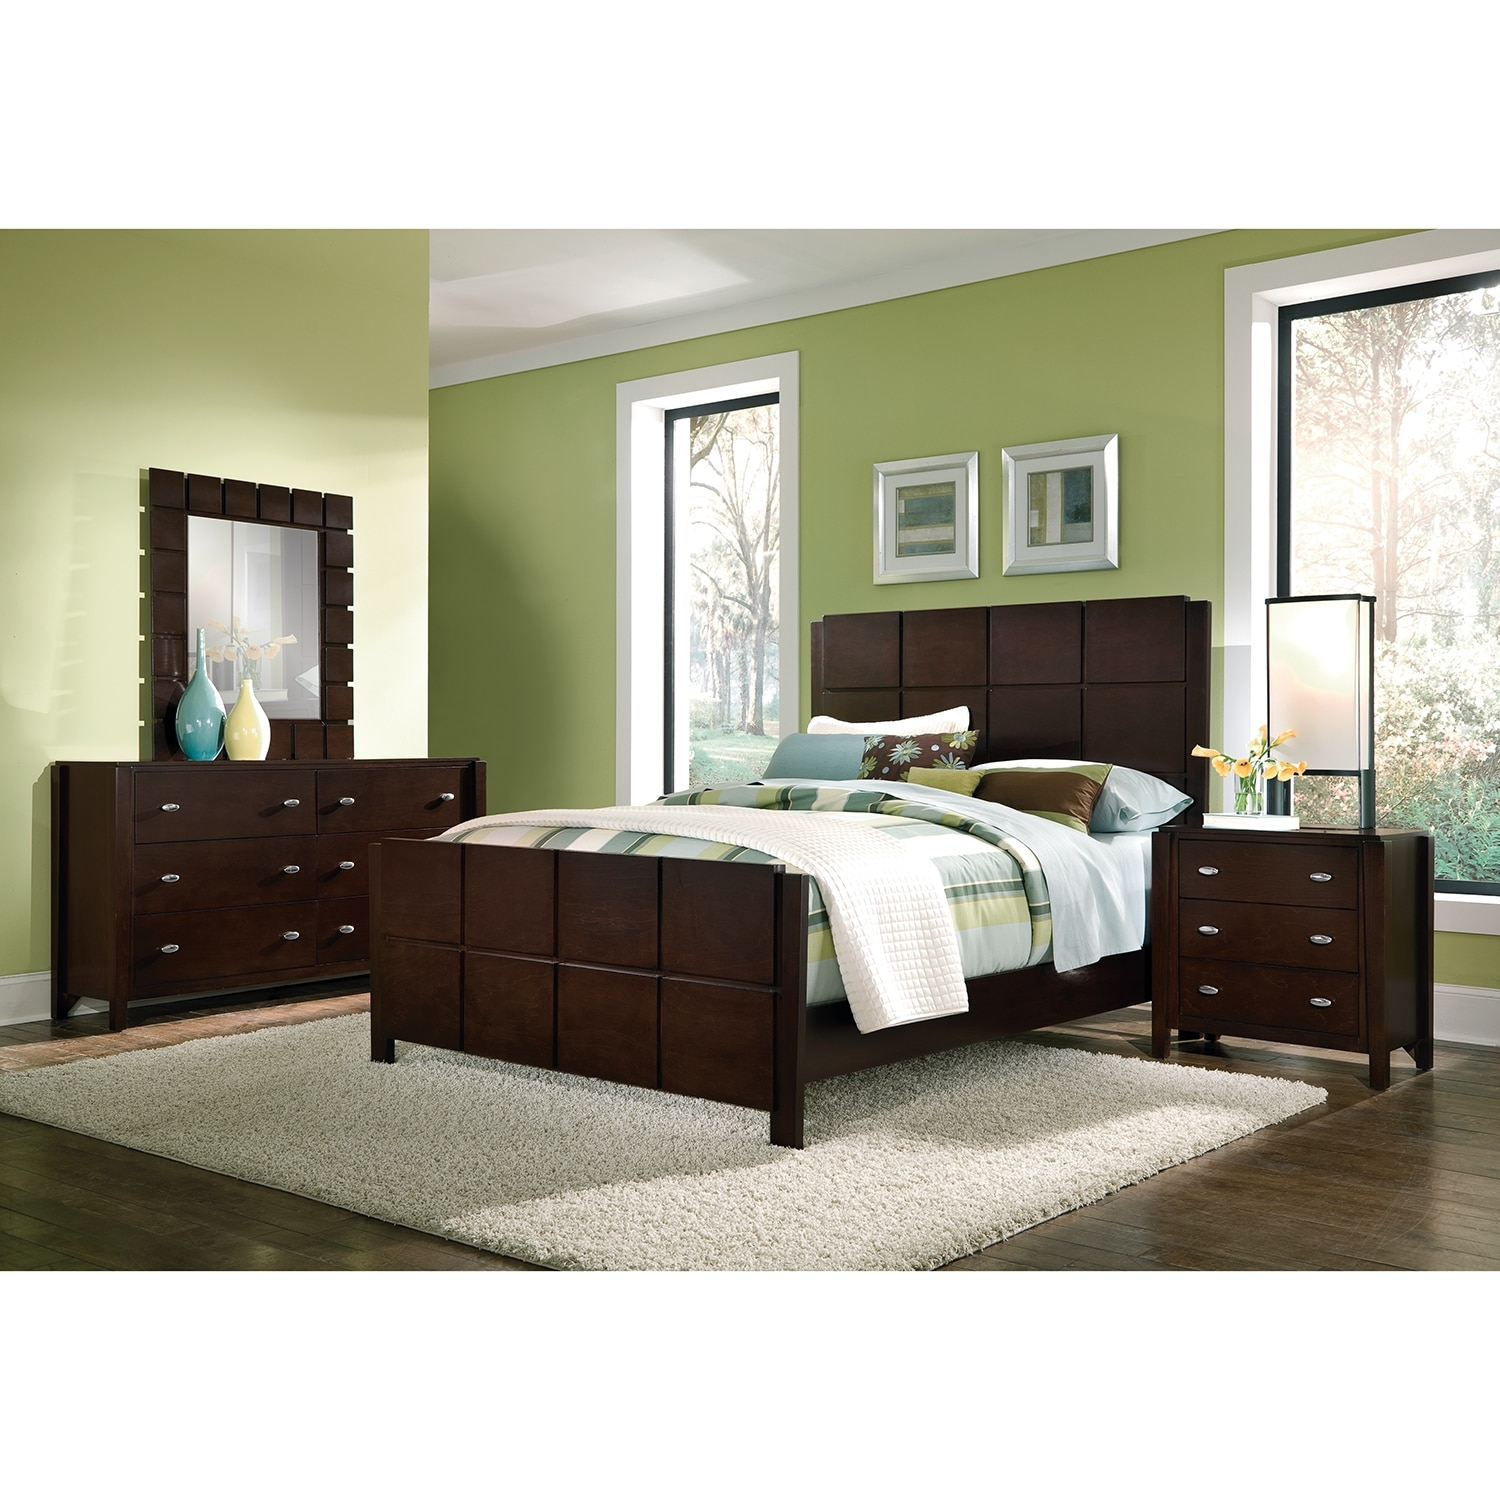 bedroom furniture mosaic 6 piece queen bedroom set dark brown